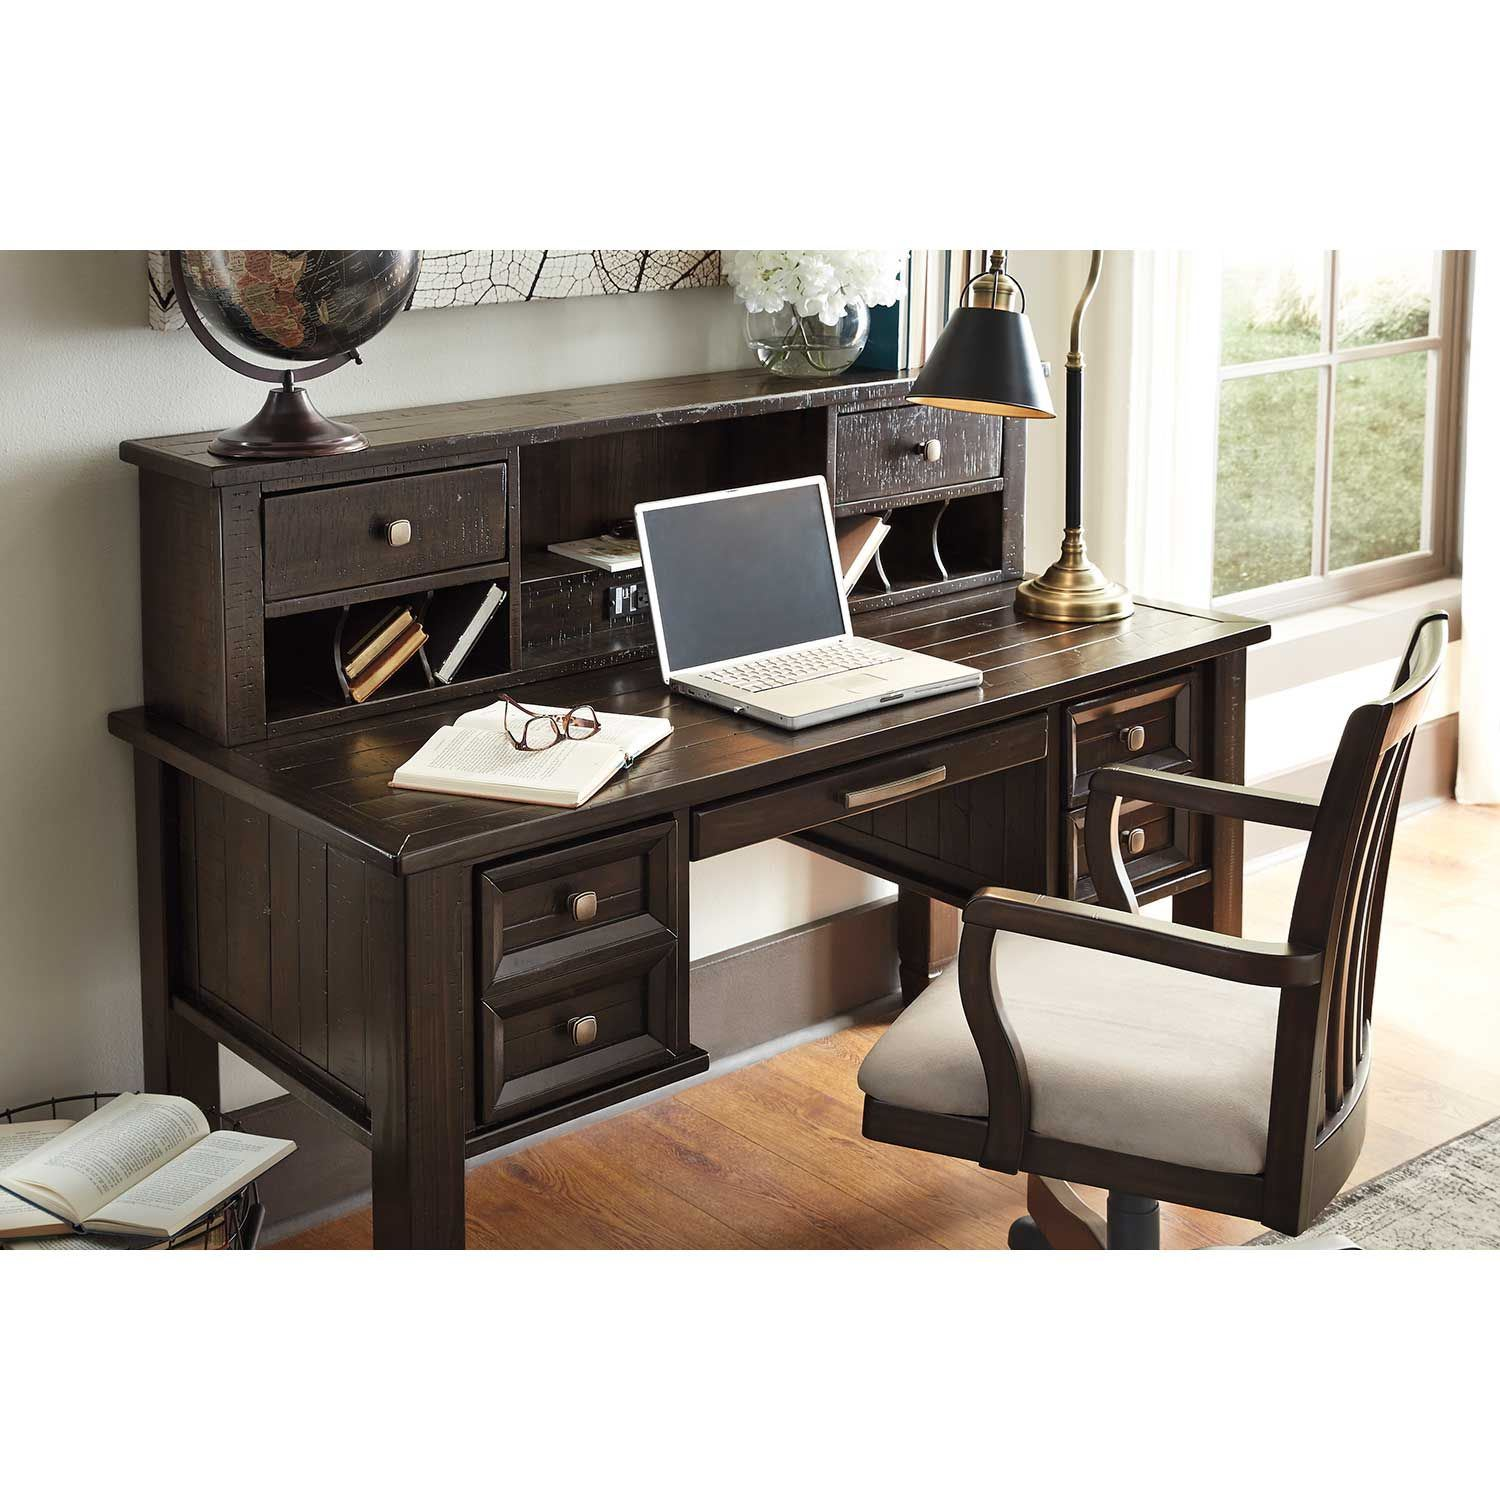 Picture of Townser Swivel Desk Chair